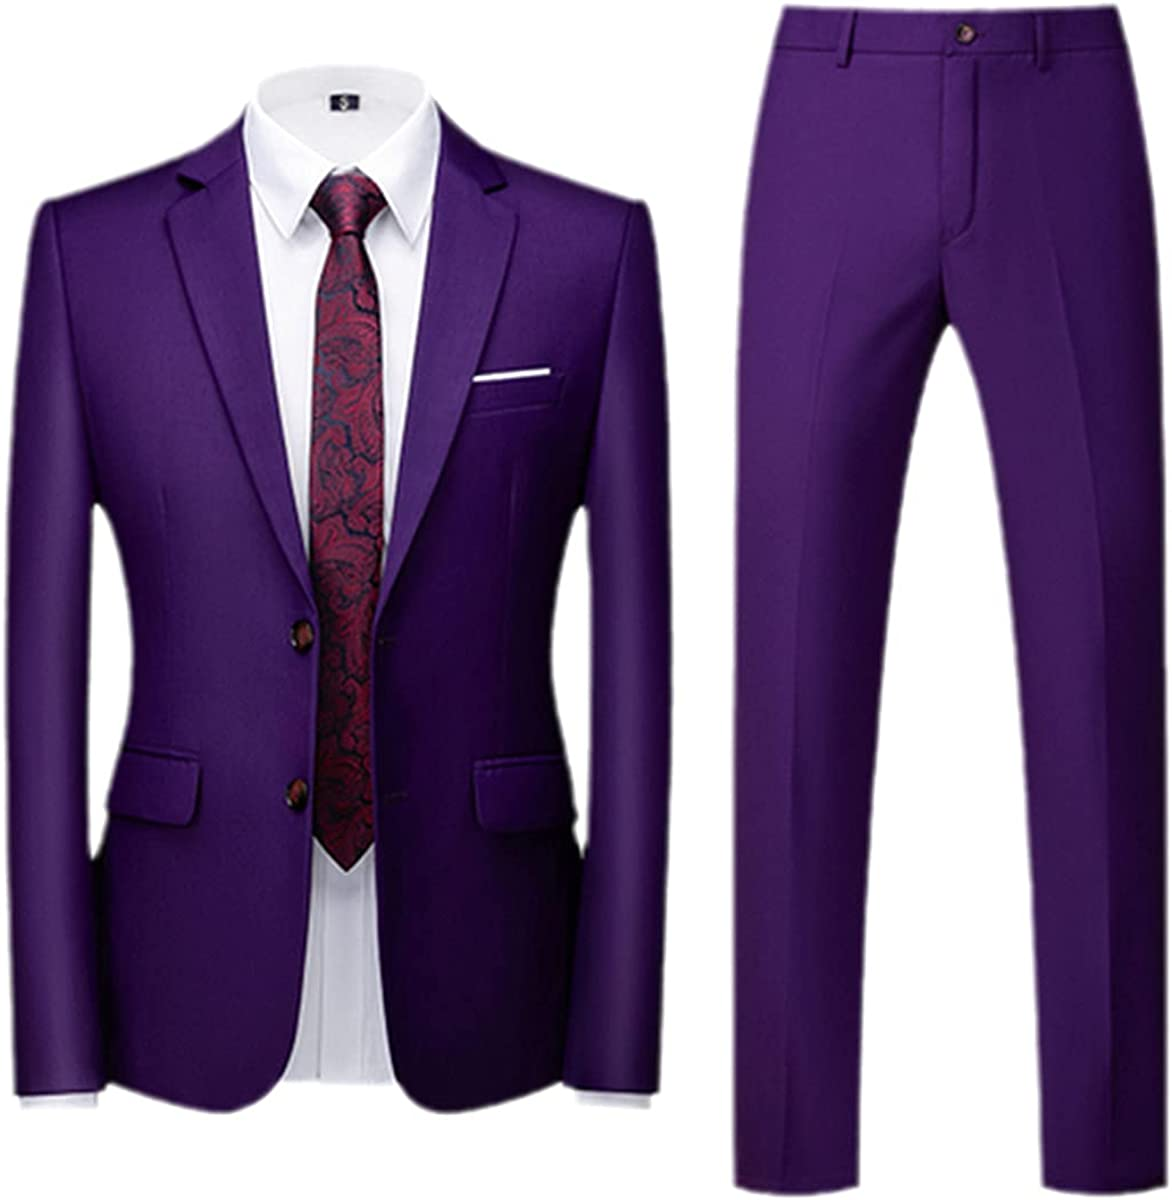 CACLSL Spring and Autumn Fashion Men's Business Casual Solid Color Suit/Male Two Button Suit Jacket